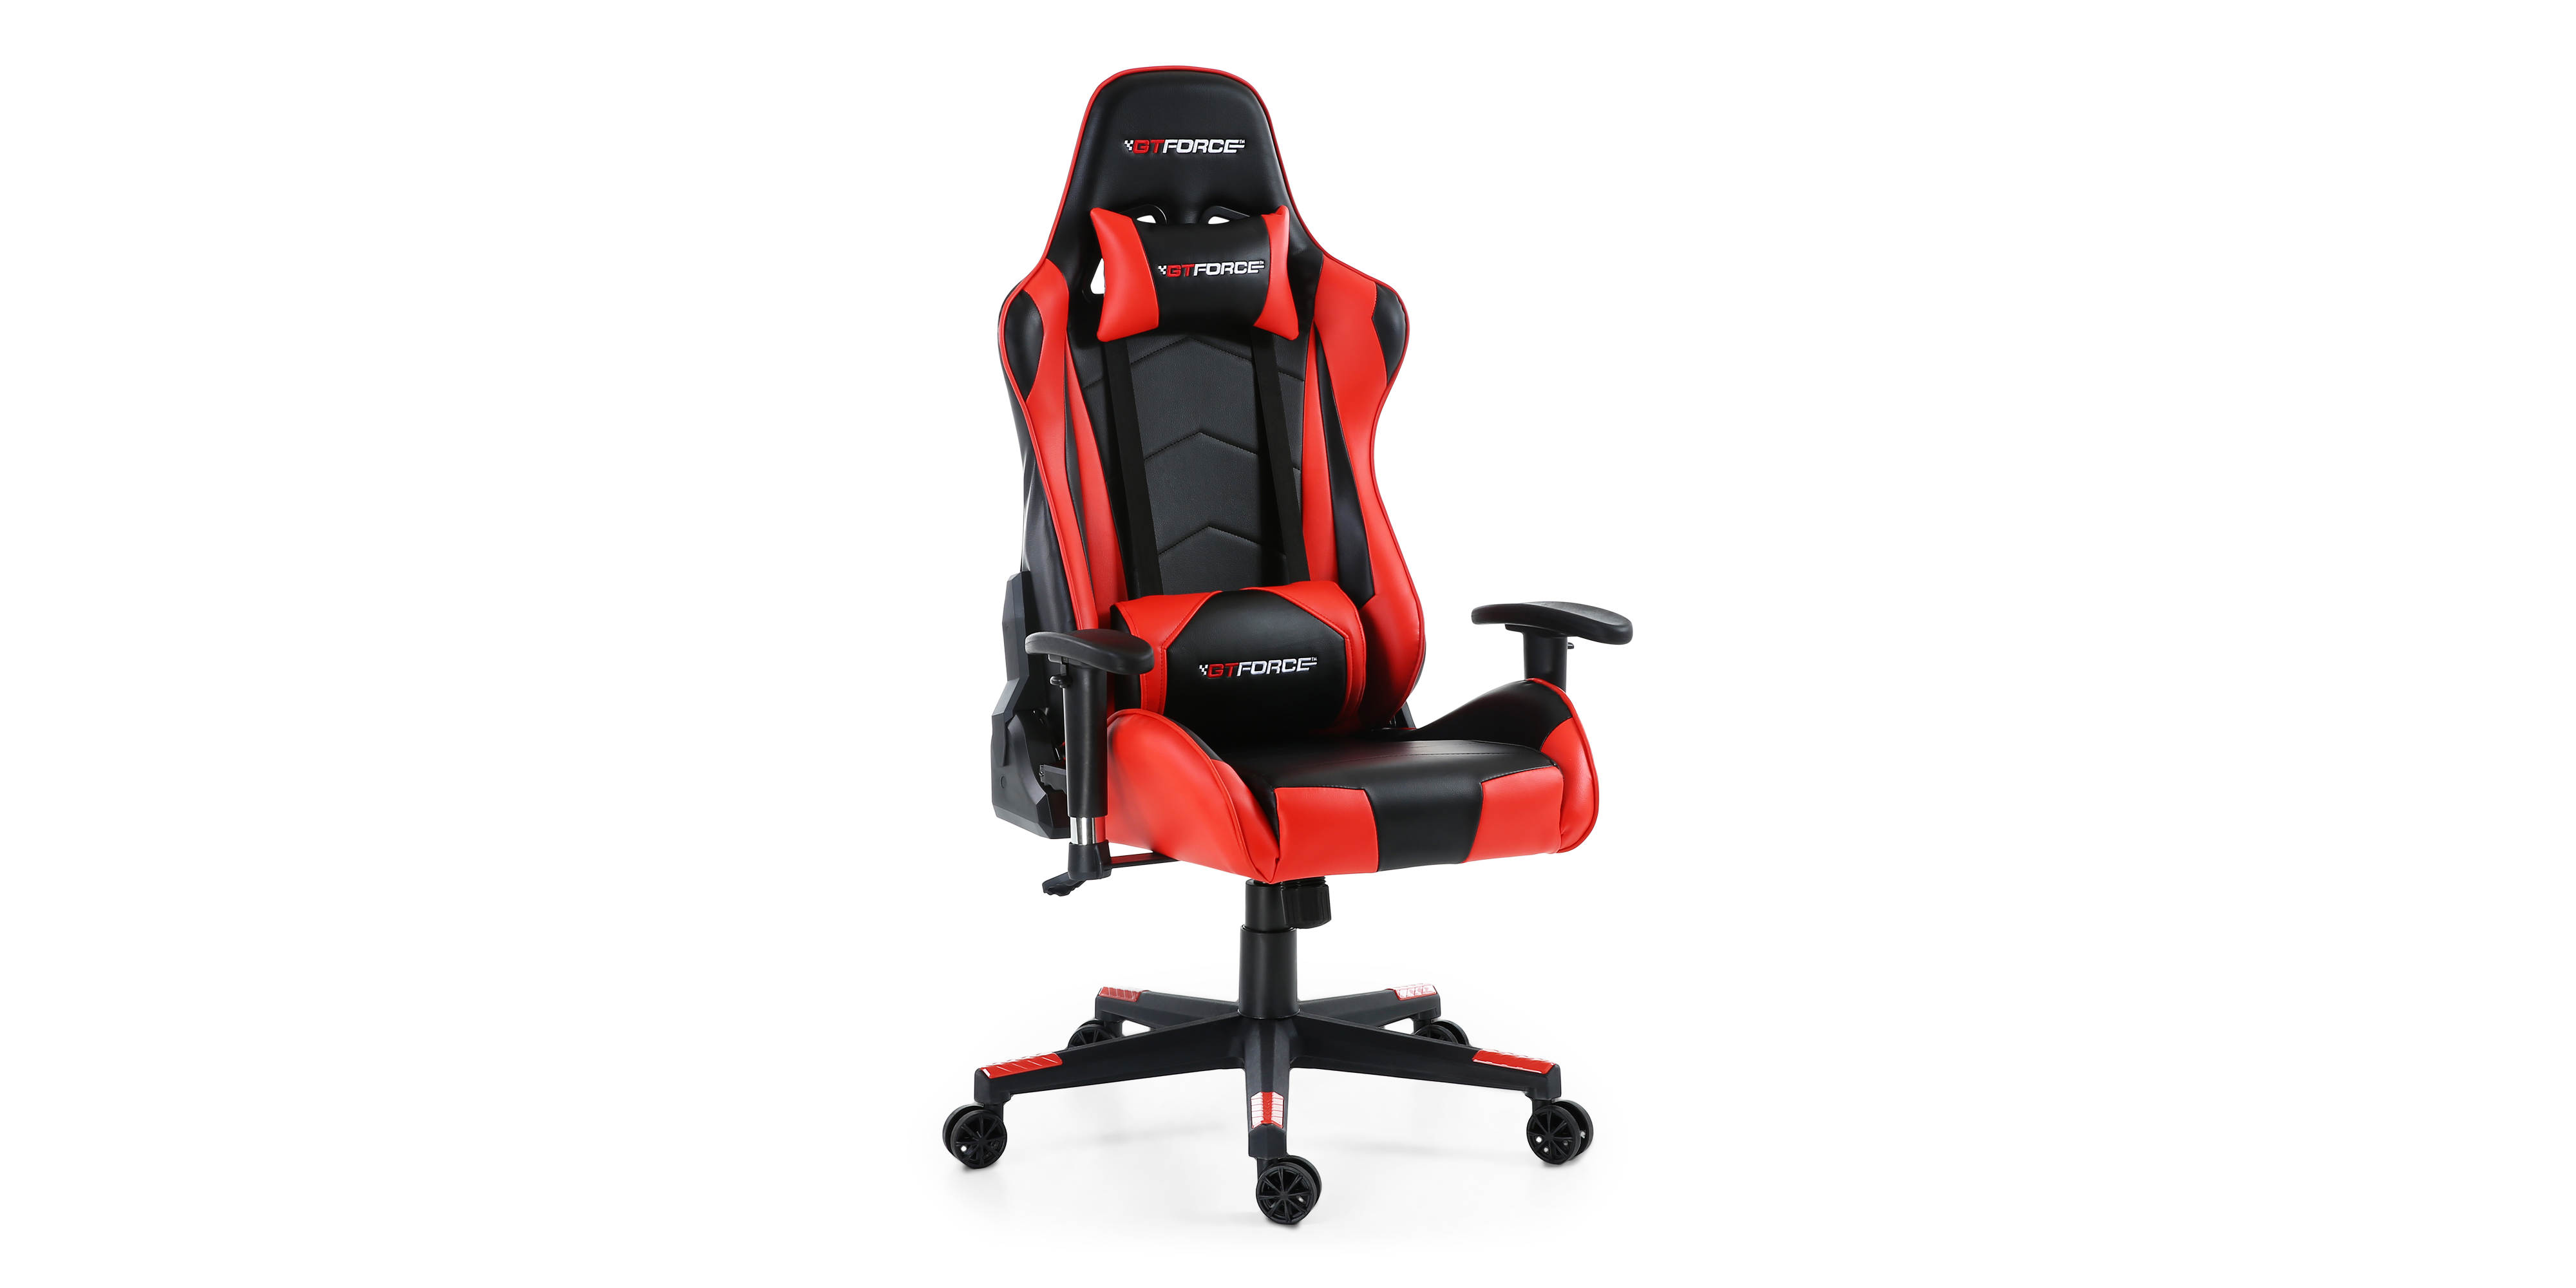 Gtforce Pro Fx Gaming Chair With Recline In Black Red